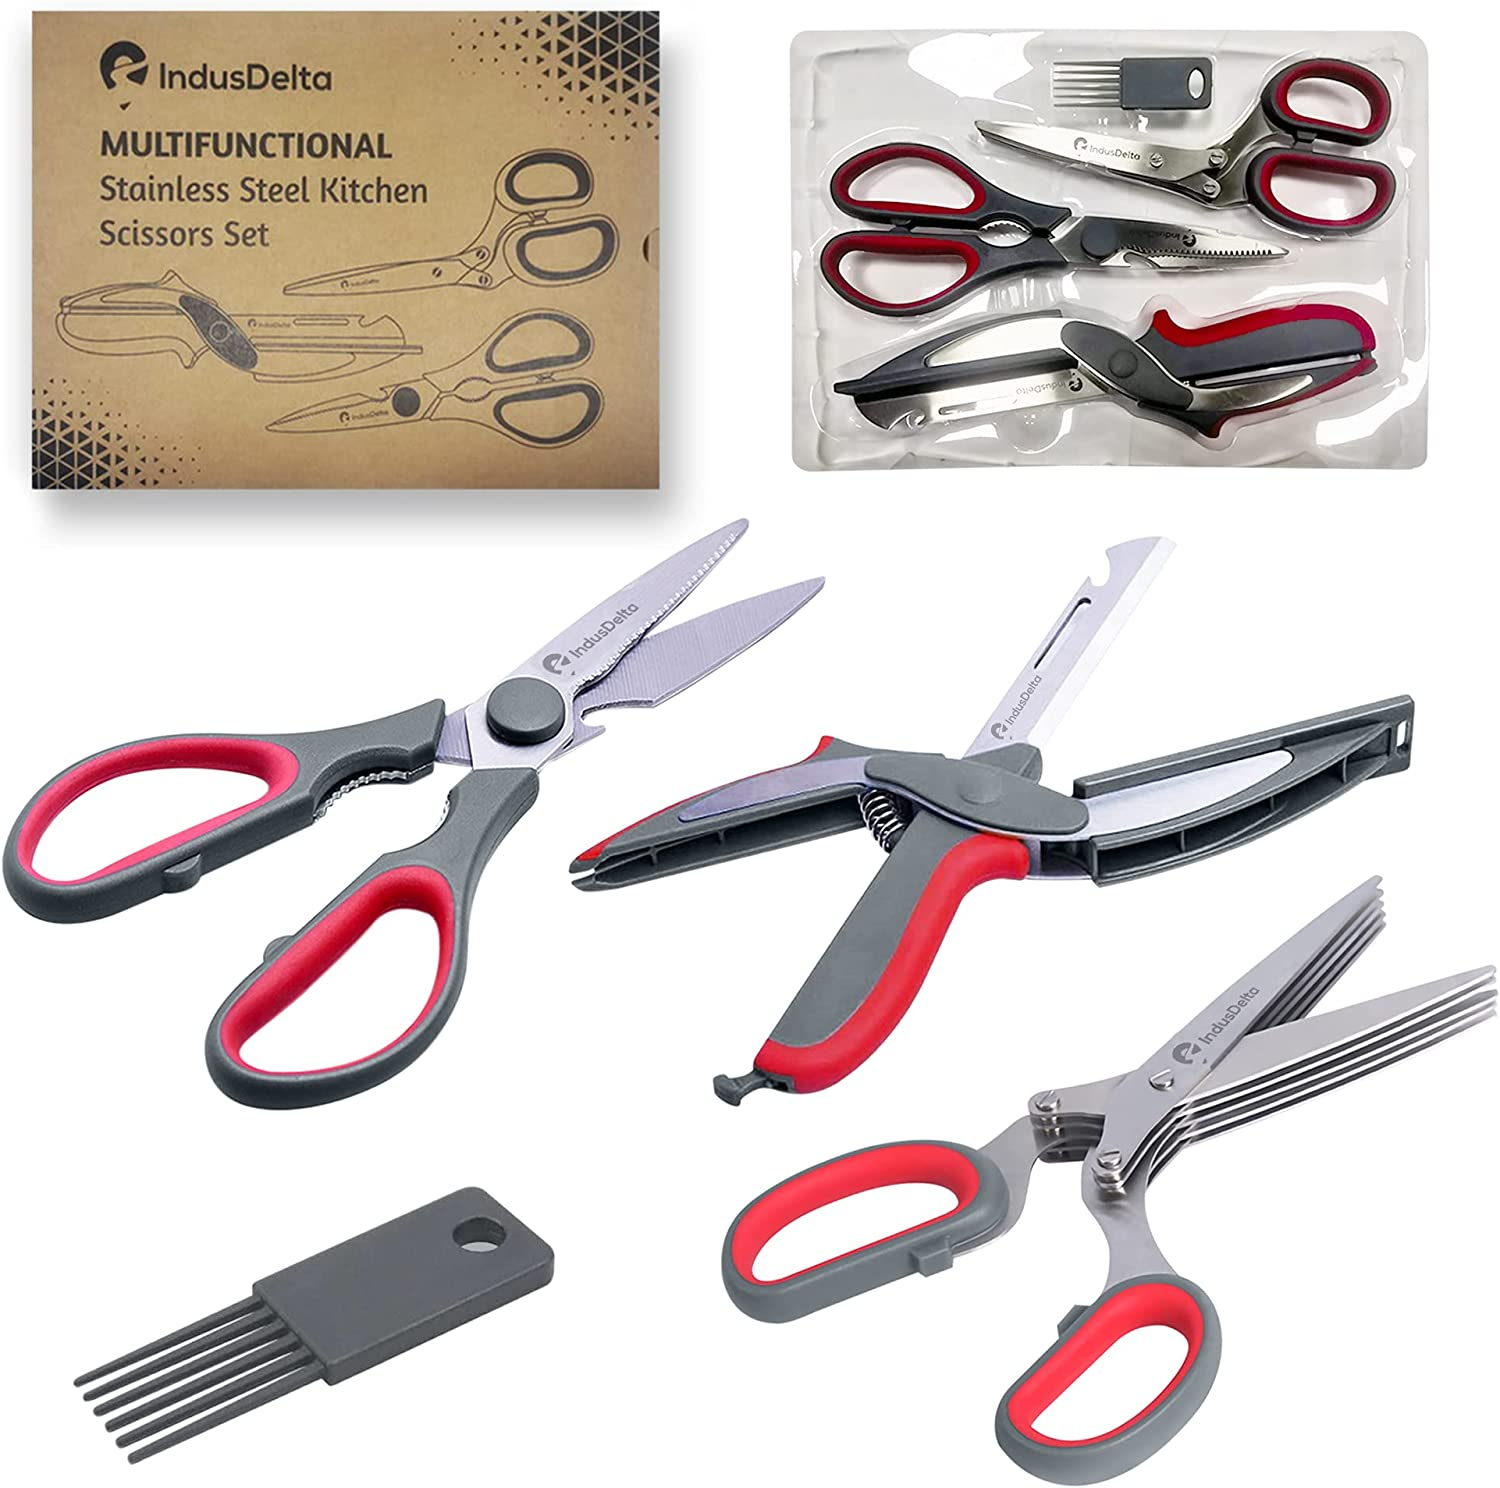 Salad Chopper Scissors Set With Smart Shears for Seafood Herb Scissors With 5 Blades Kitchen Shears Dishwasher Safe And Heavy Duty Scissors Cutting Scissors Kitchen Shredding Scissors